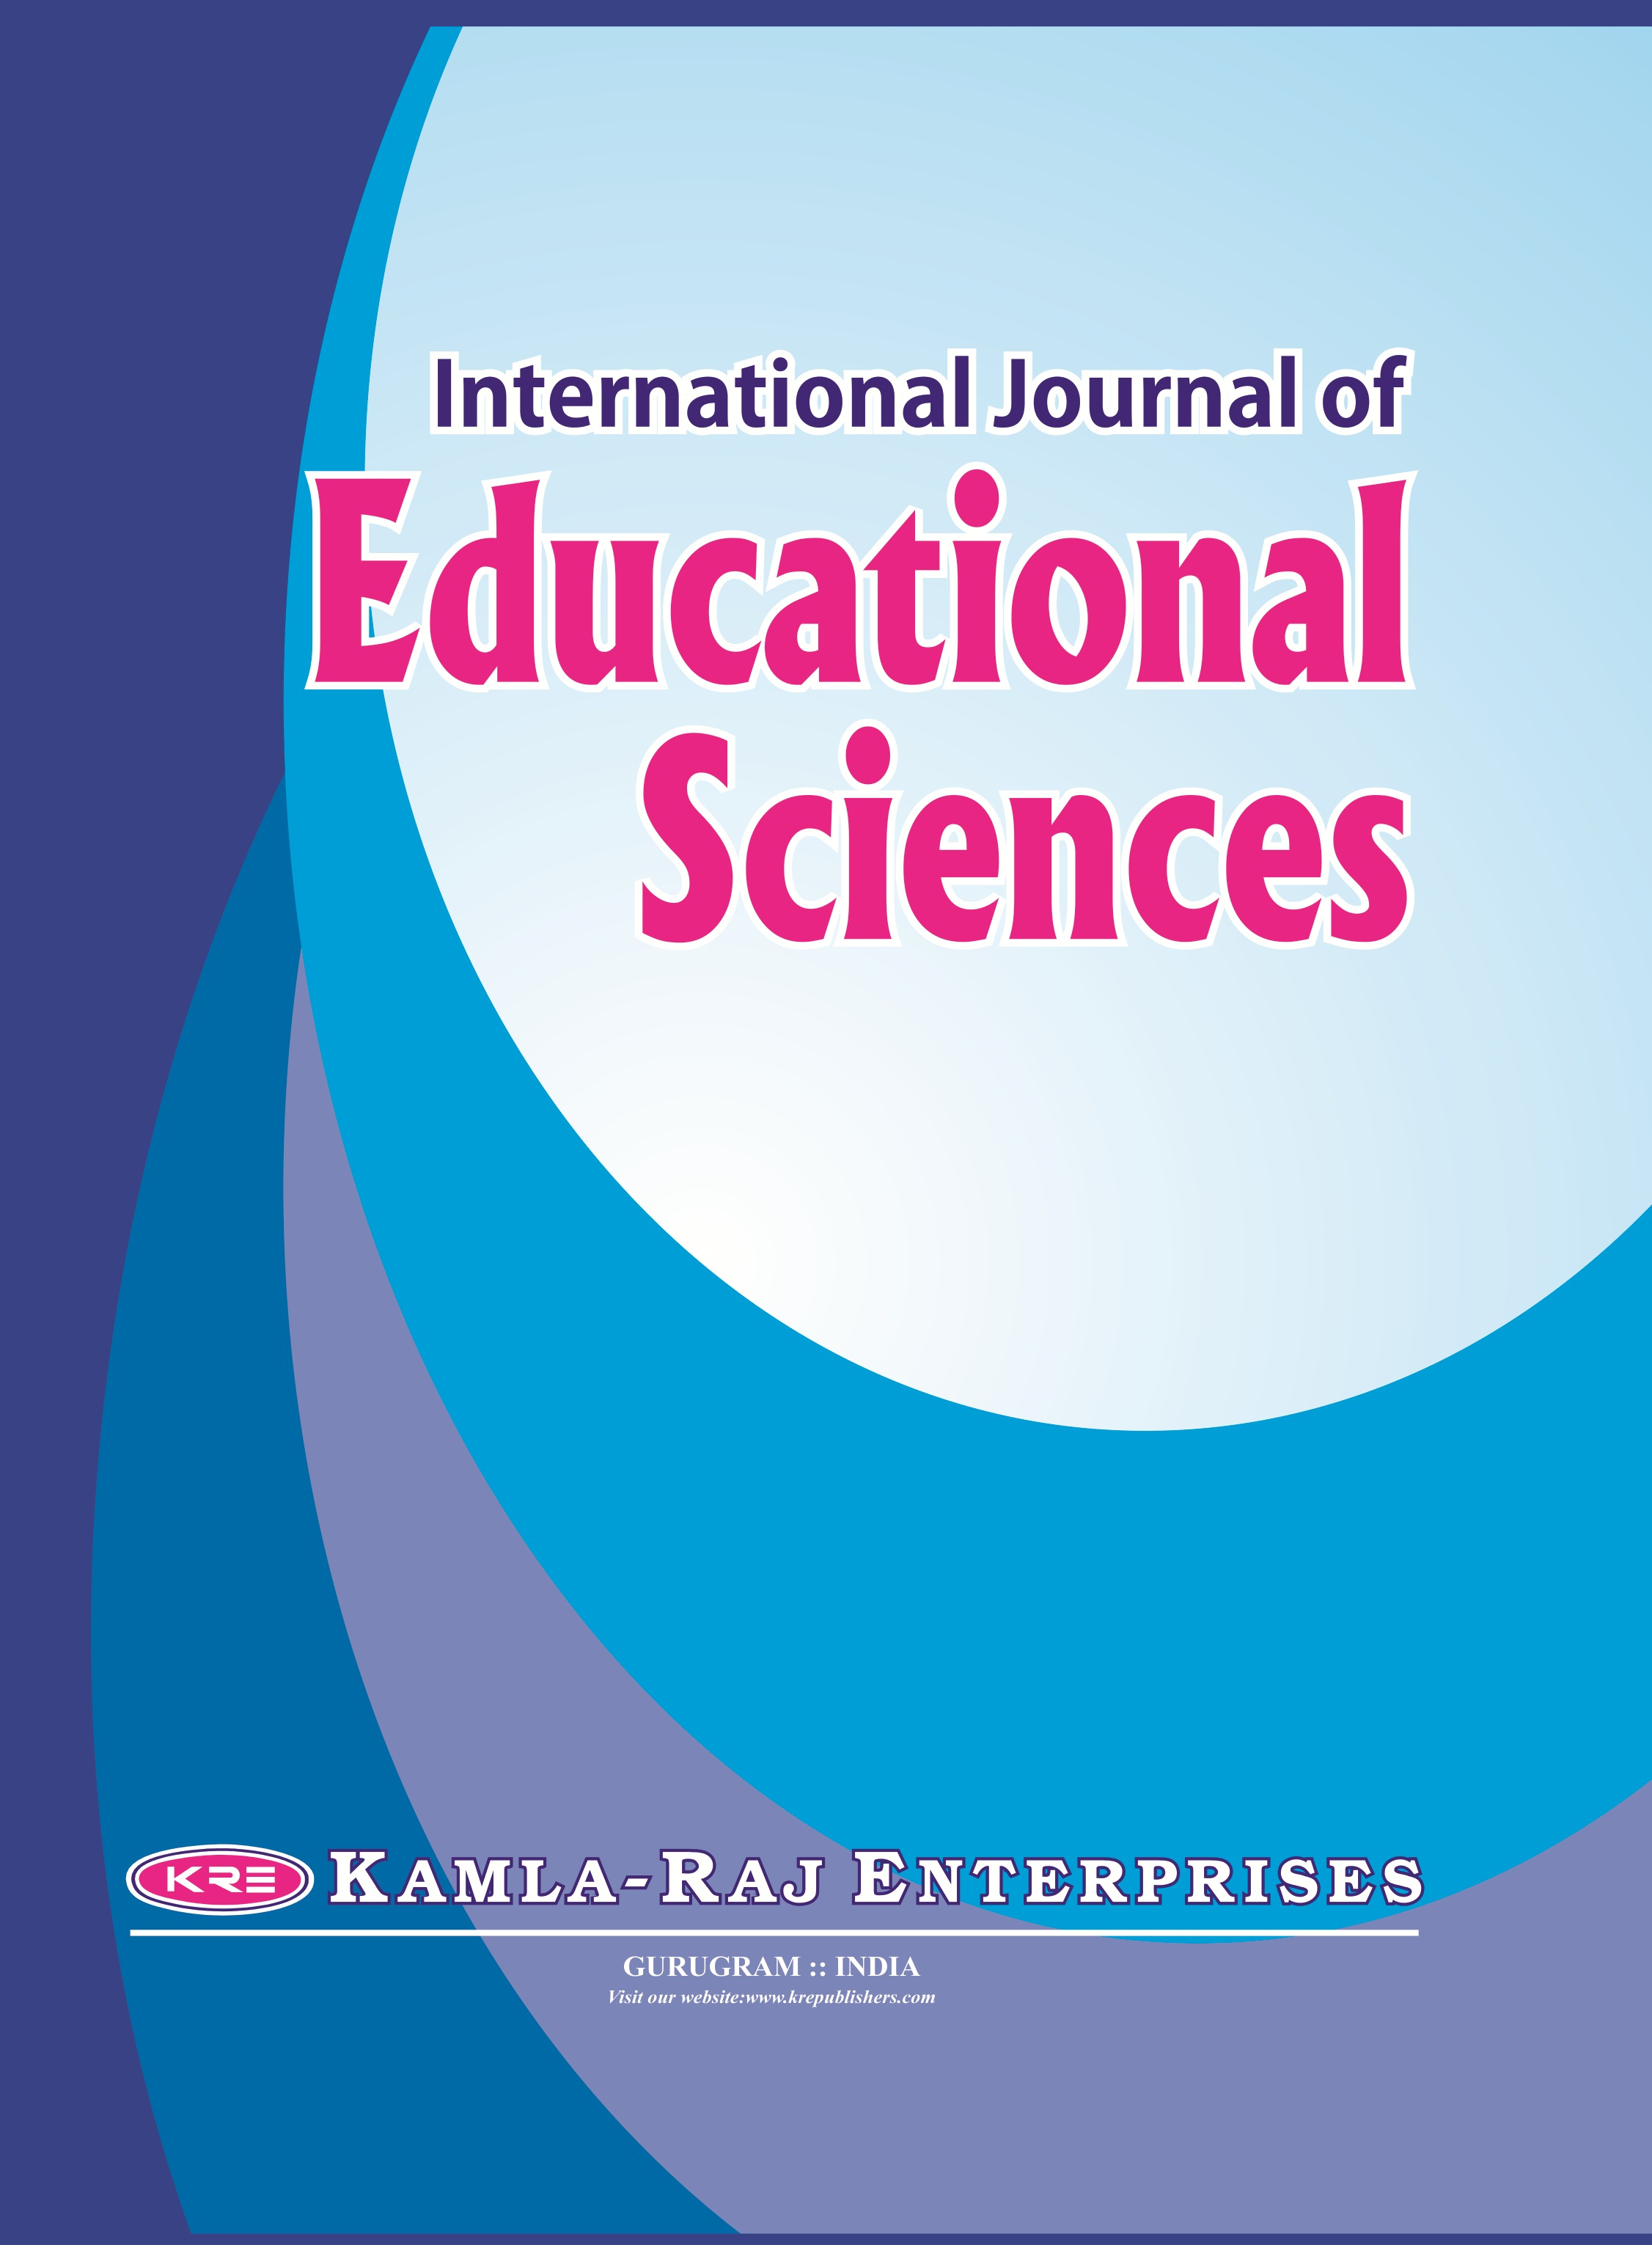 International Journal of Educational Sciences